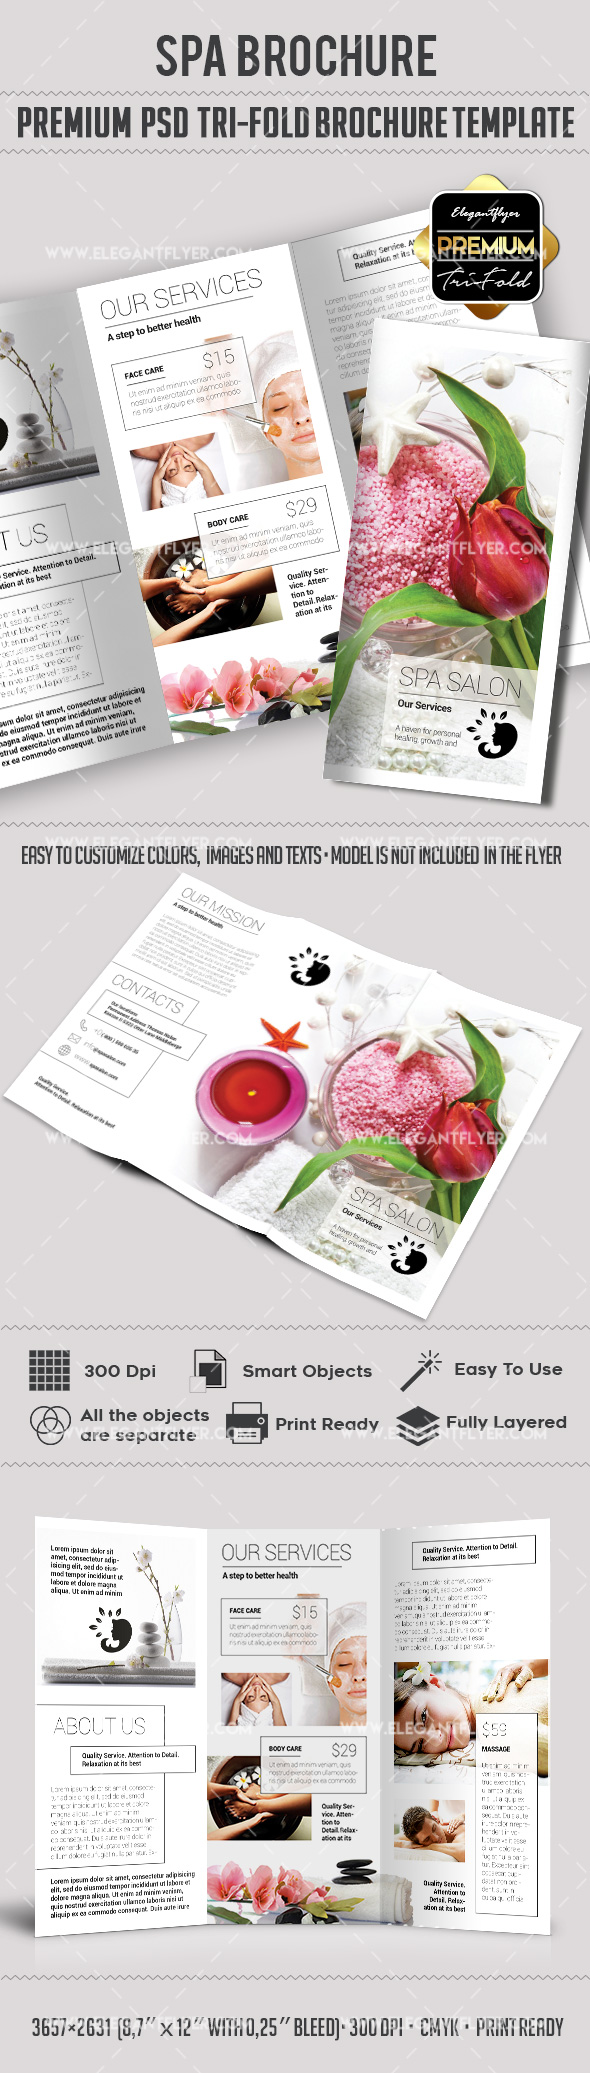 two fold brochure template psd - tri fold brochure for spa salon template by elegantflyer